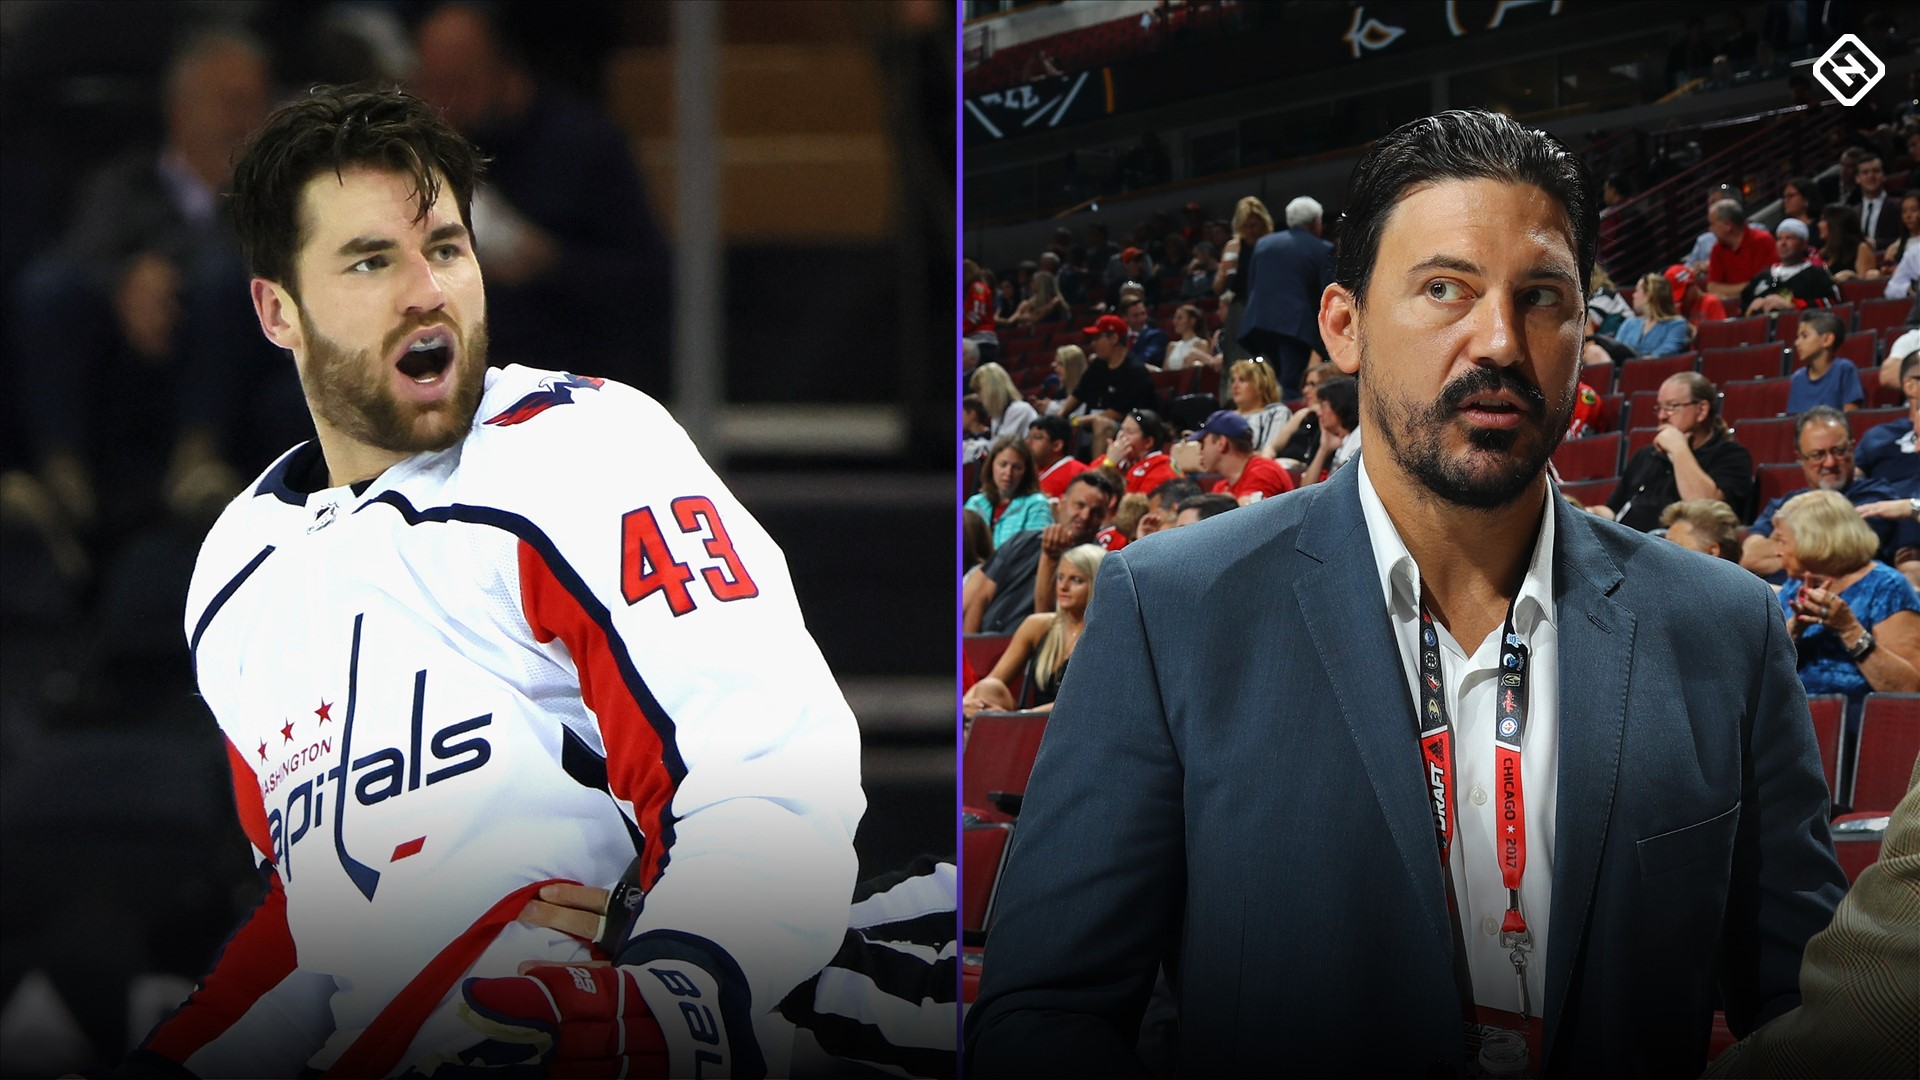 Rangers 'disappointed' unsuspended Tom Wilson, call George Parros 'unfit' to lead NHL player safety